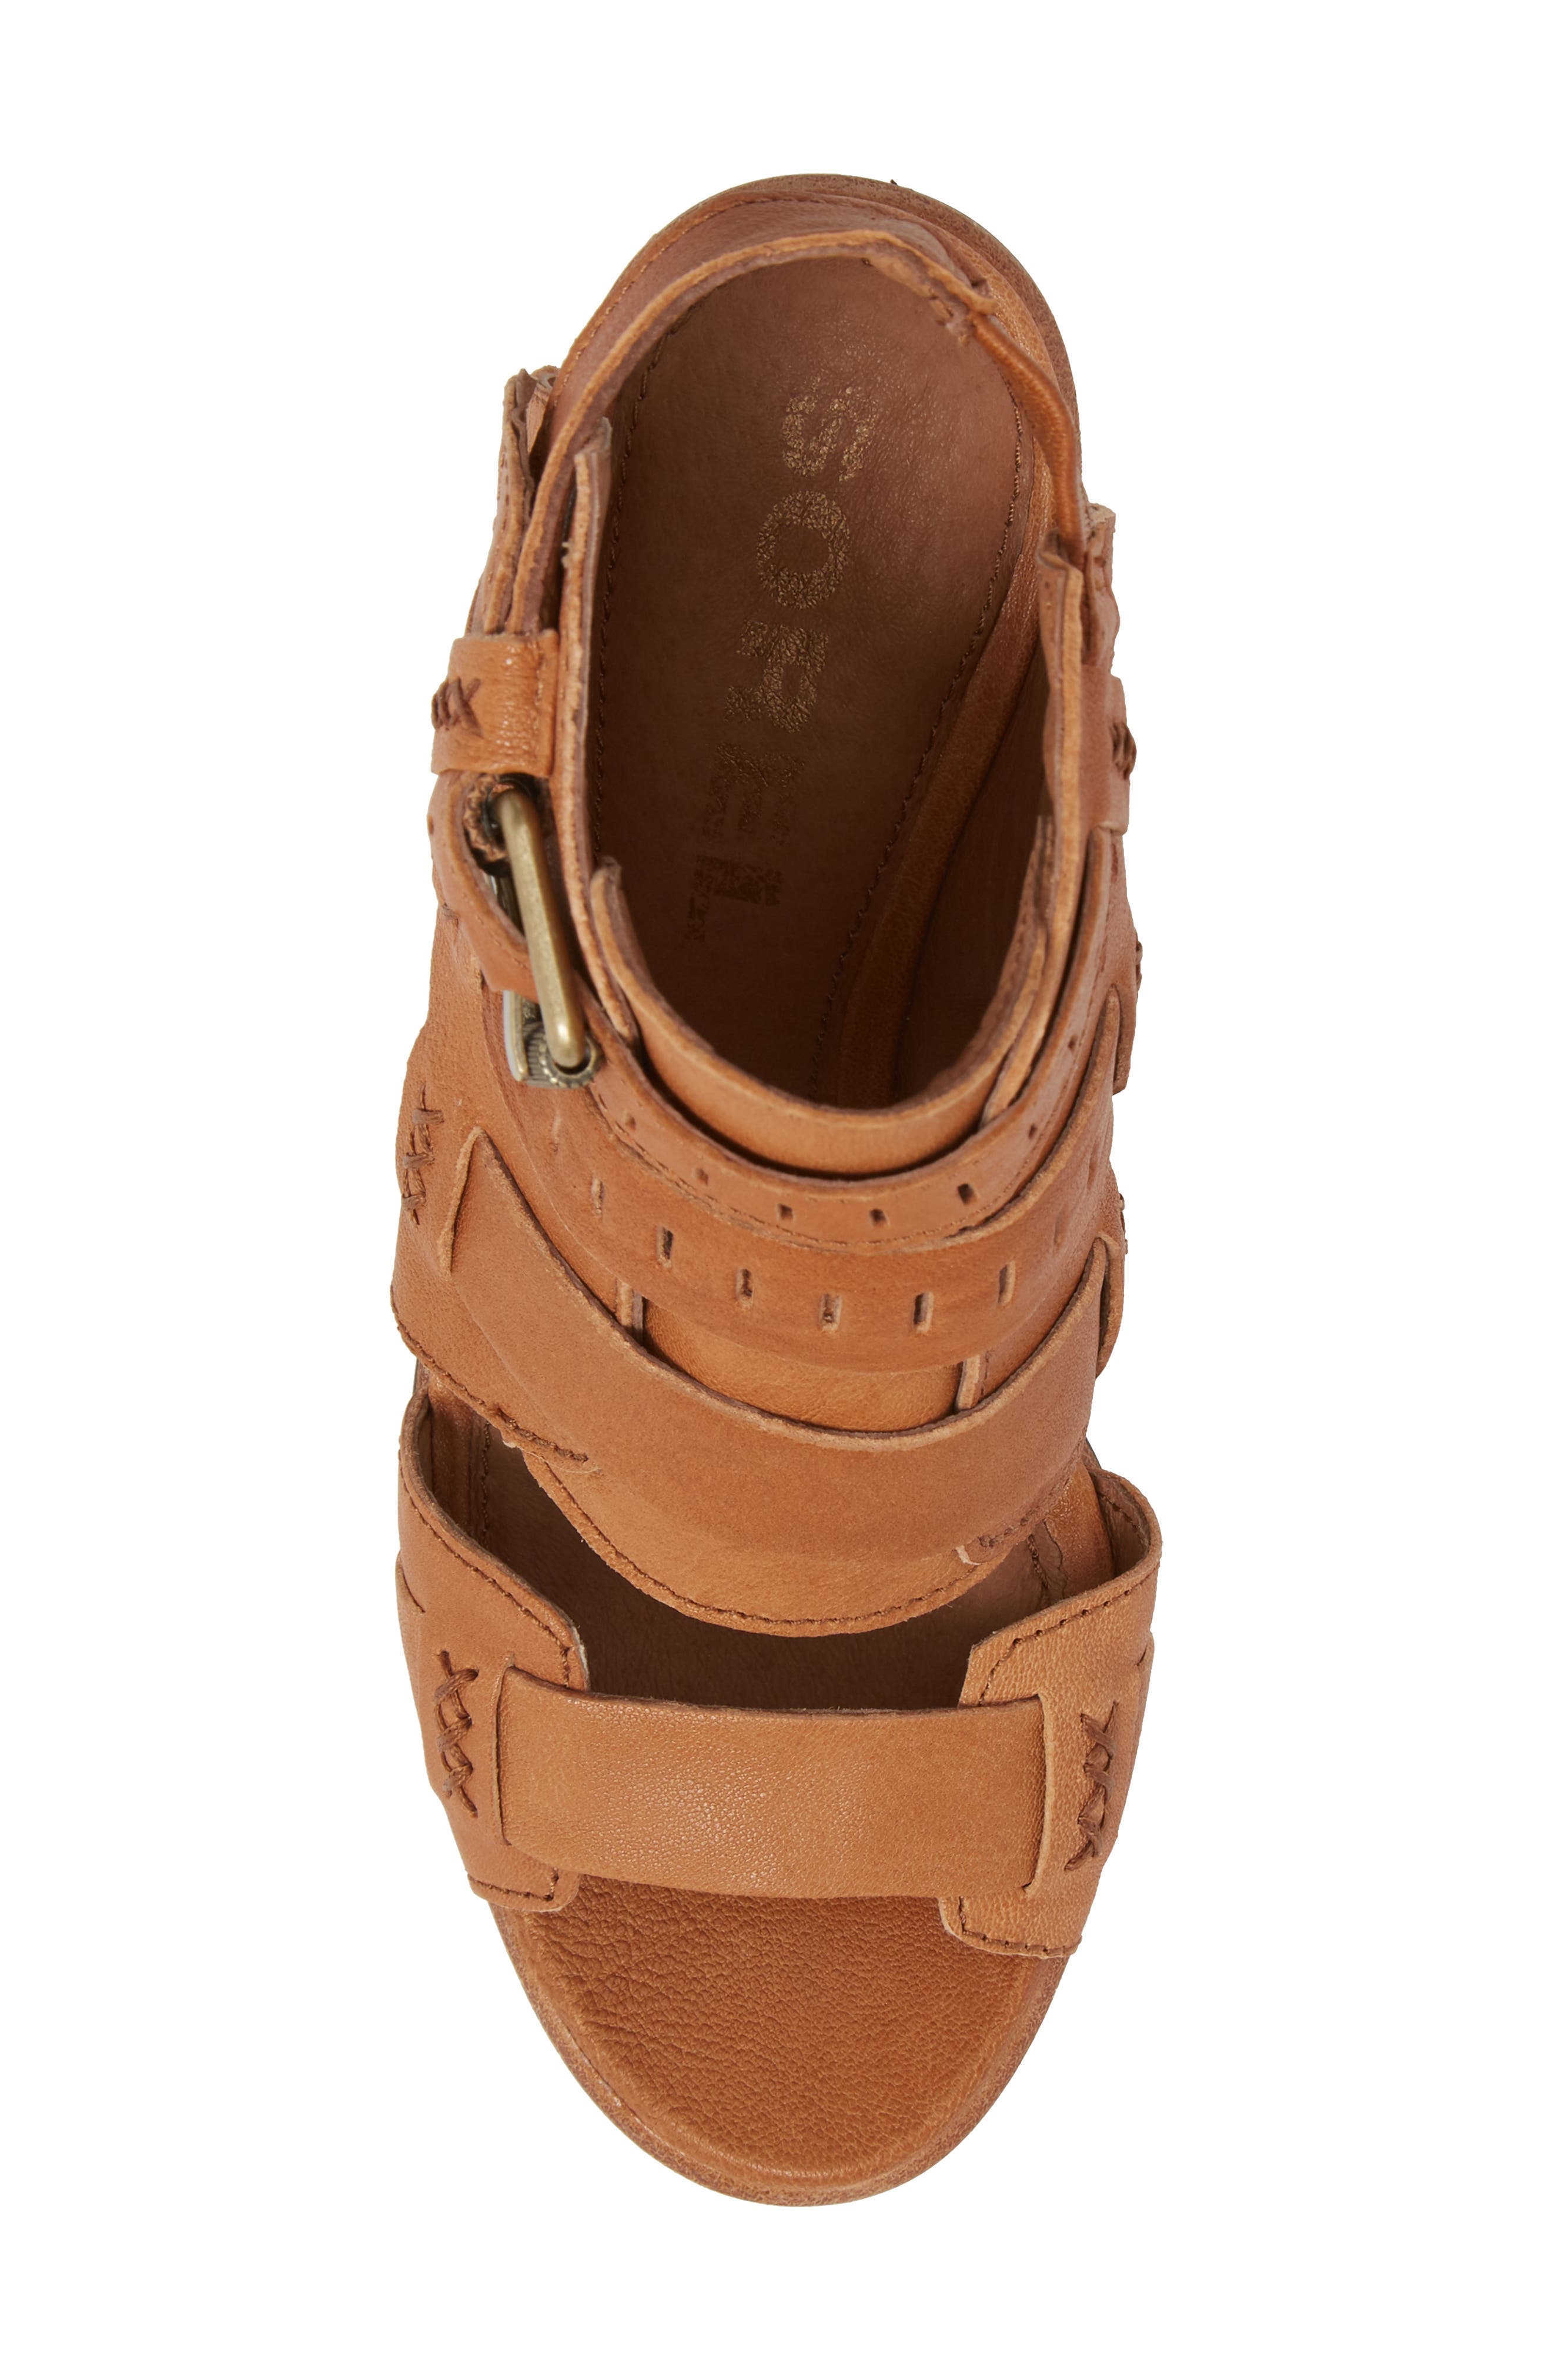 Nadia Buckle Bootie,                             Alternate thumbnail 5, color,                             Camel Brown